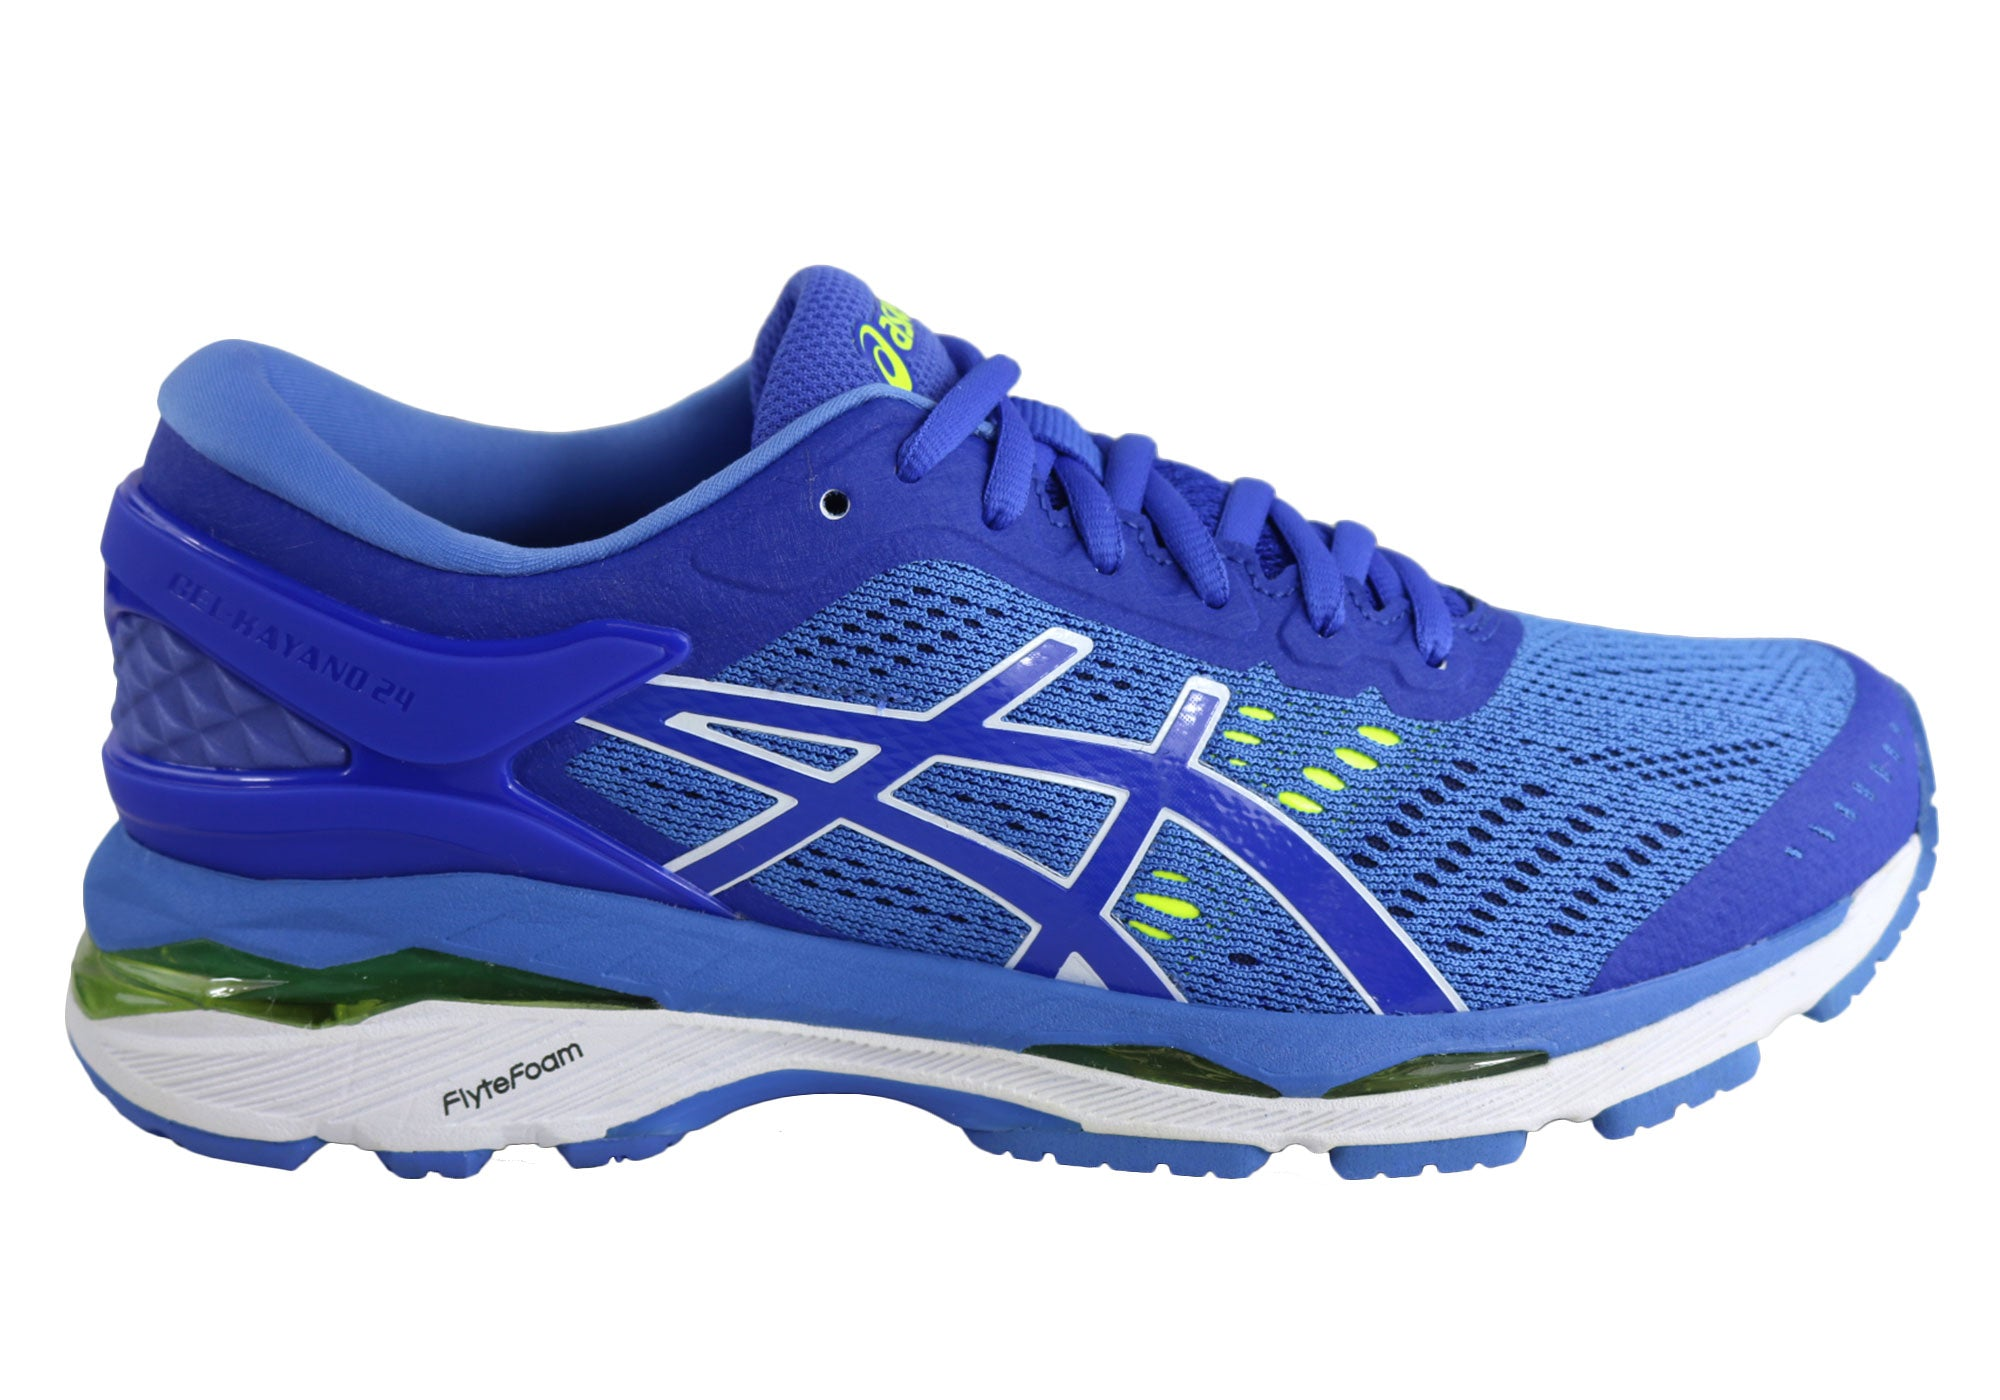 559cc256fe2 Asics Gel-Kayano 24 Womens Premium Cushioned Running Sport Shoes ...